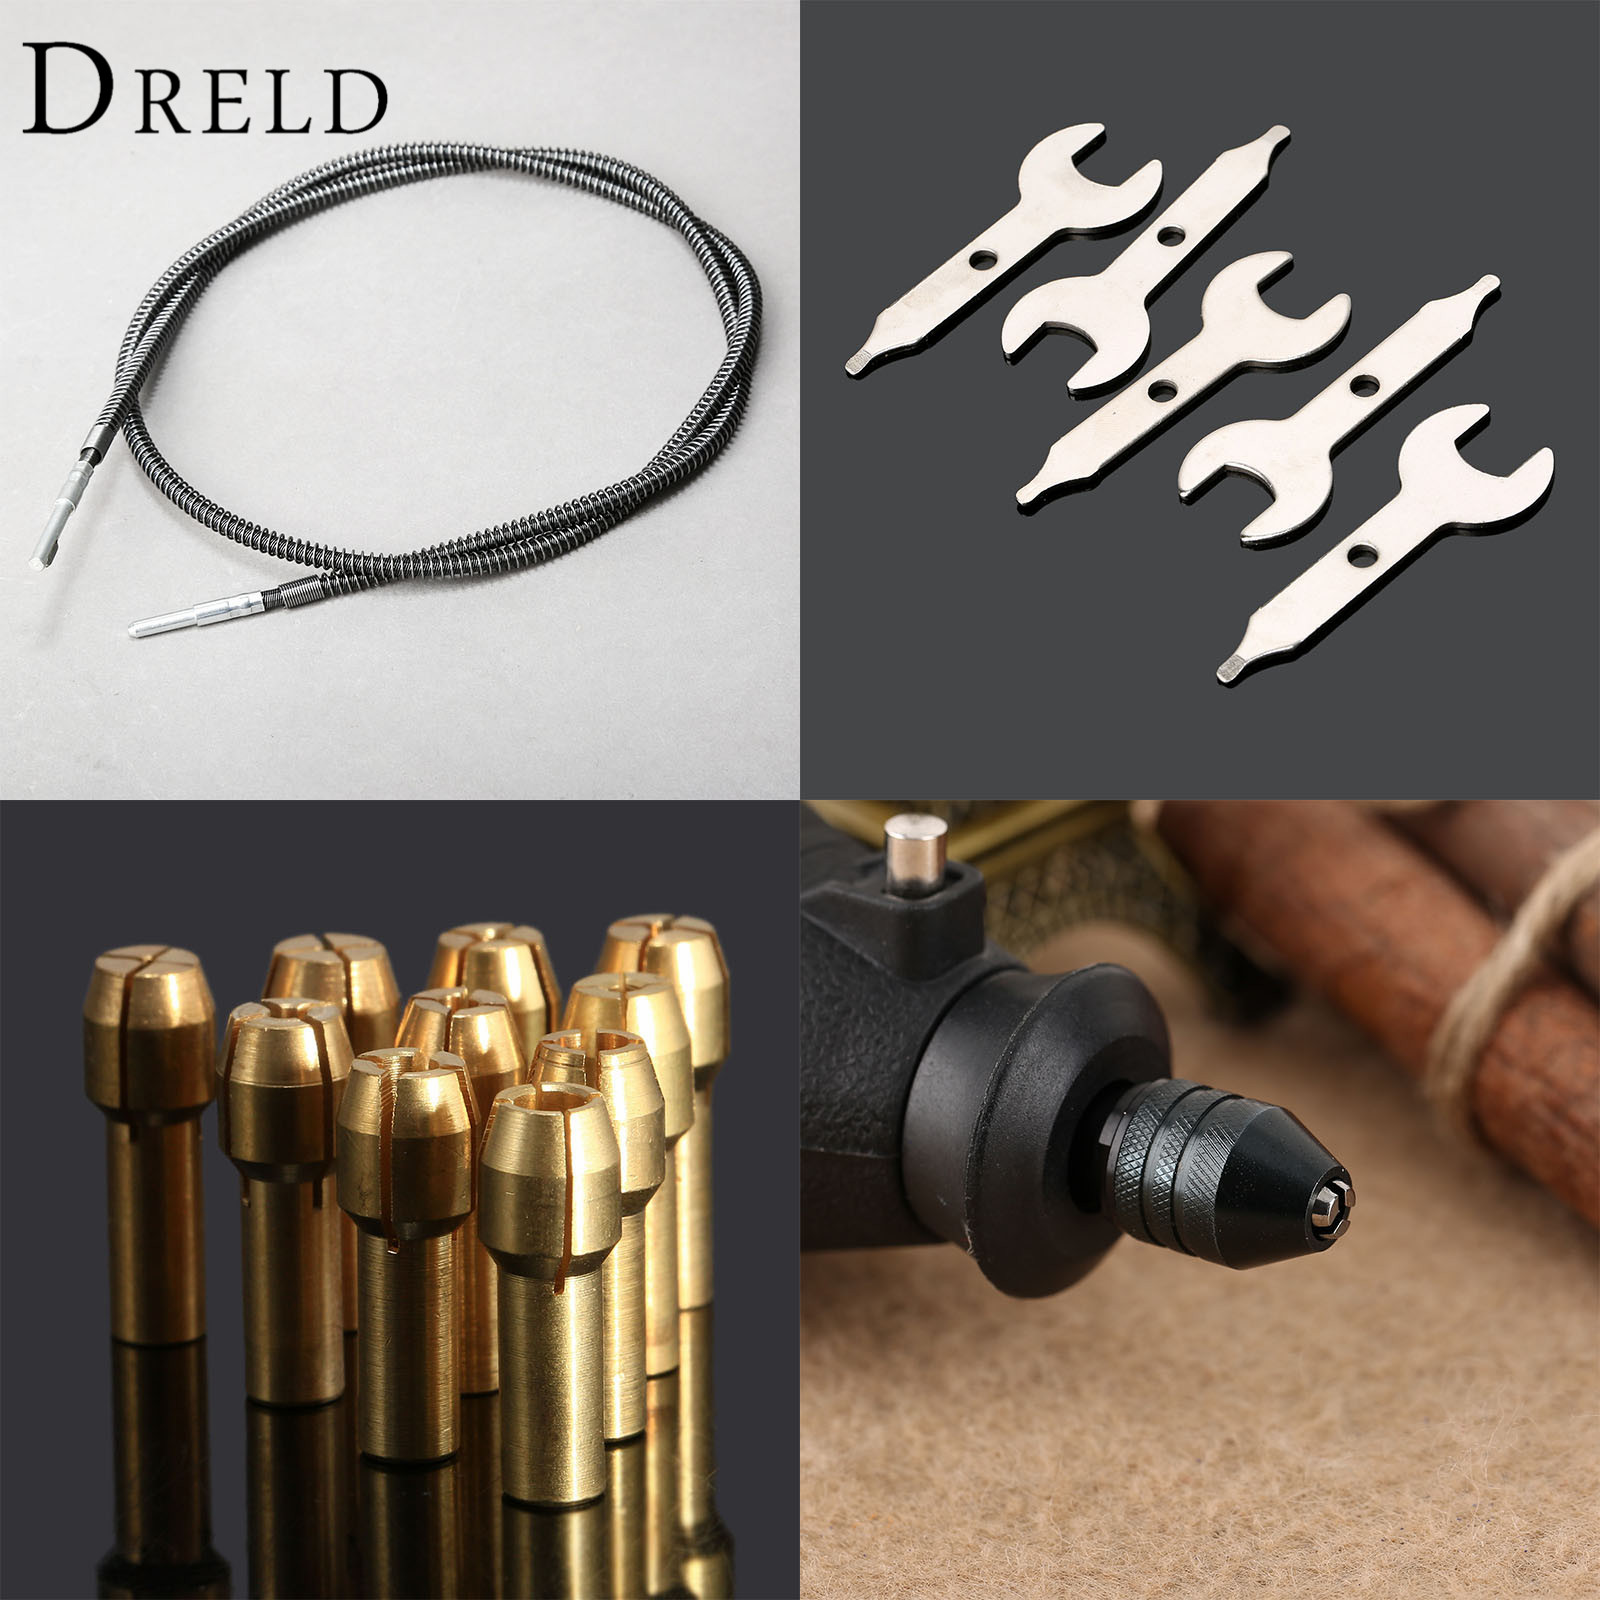 Dremel Accessories 0.5-3.2mm Brass Collets Tools+ Multi Keyless Drill Chuck +Flexible Shaft +Grinder Spanner Rotary Grinder Tool flexible extension cord shaft rotary grinder tool m8 keyless chuck aluminum flex shaft for grinding tools